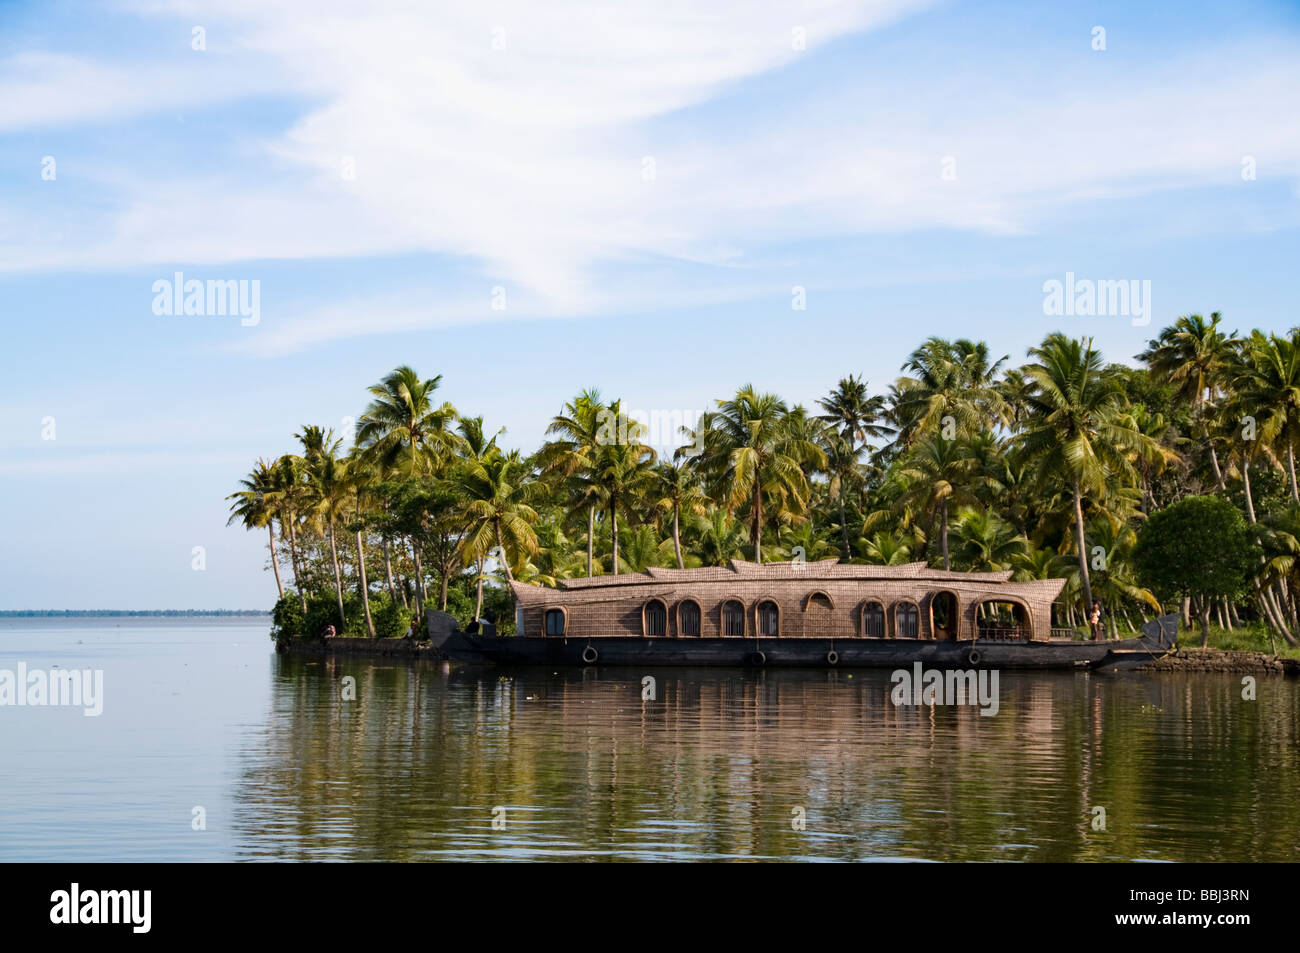 House boat parked in shore of Backwater alleppey kerala, India - Stock Image